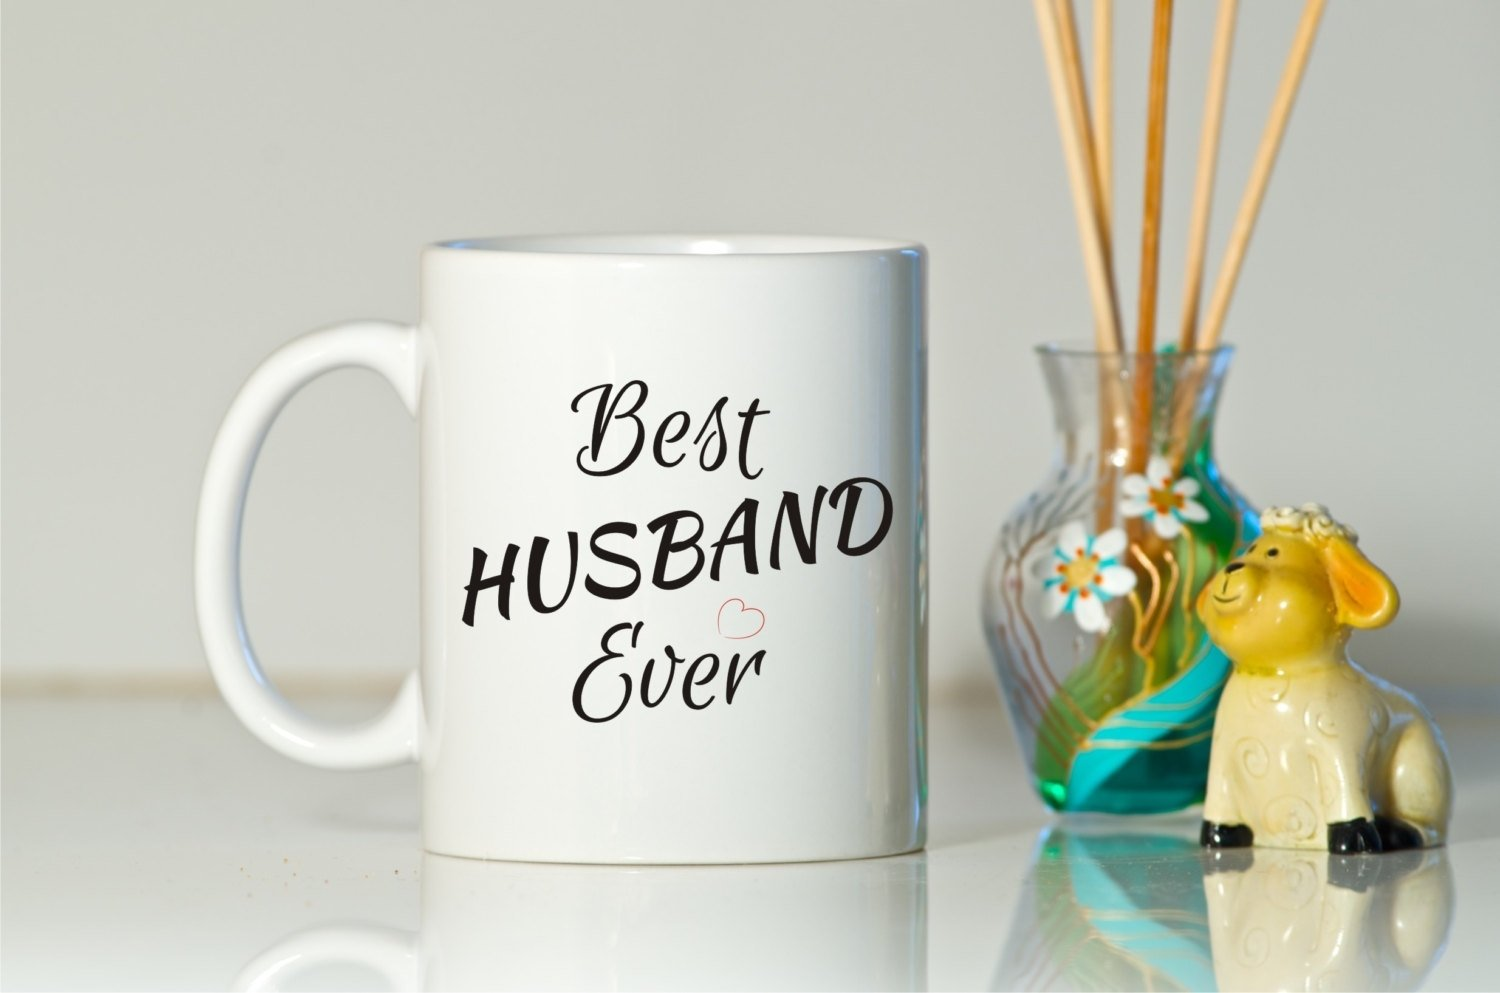 10 Famous Birthday Gift Ideas For Husband first birthday gift for husband wife after wedding marriage anniversary 10 2020